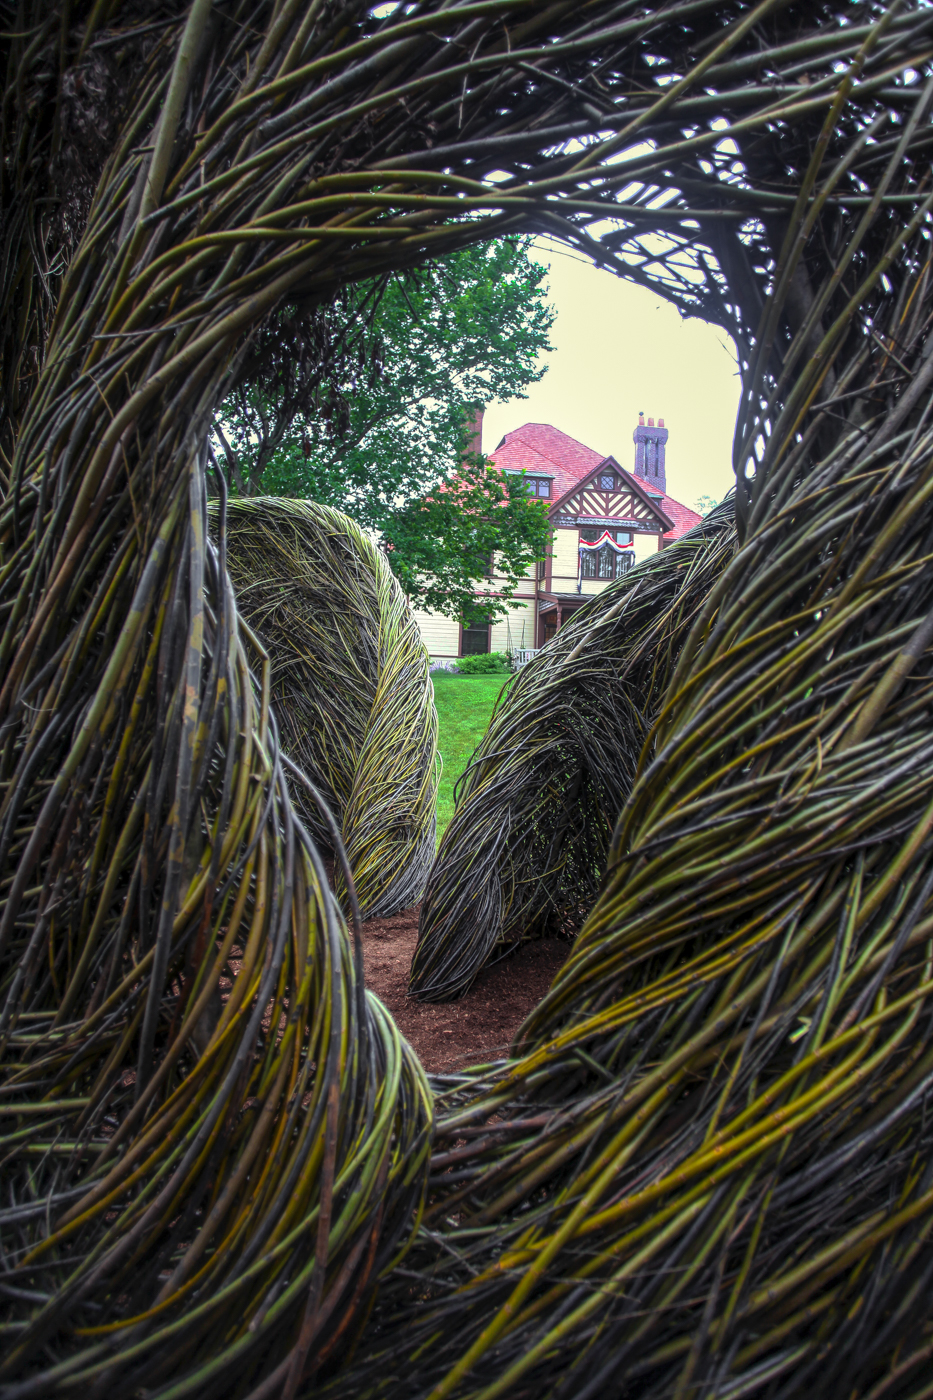 HIGHFIELD-A Passing Fancy: Patrick Dougherty